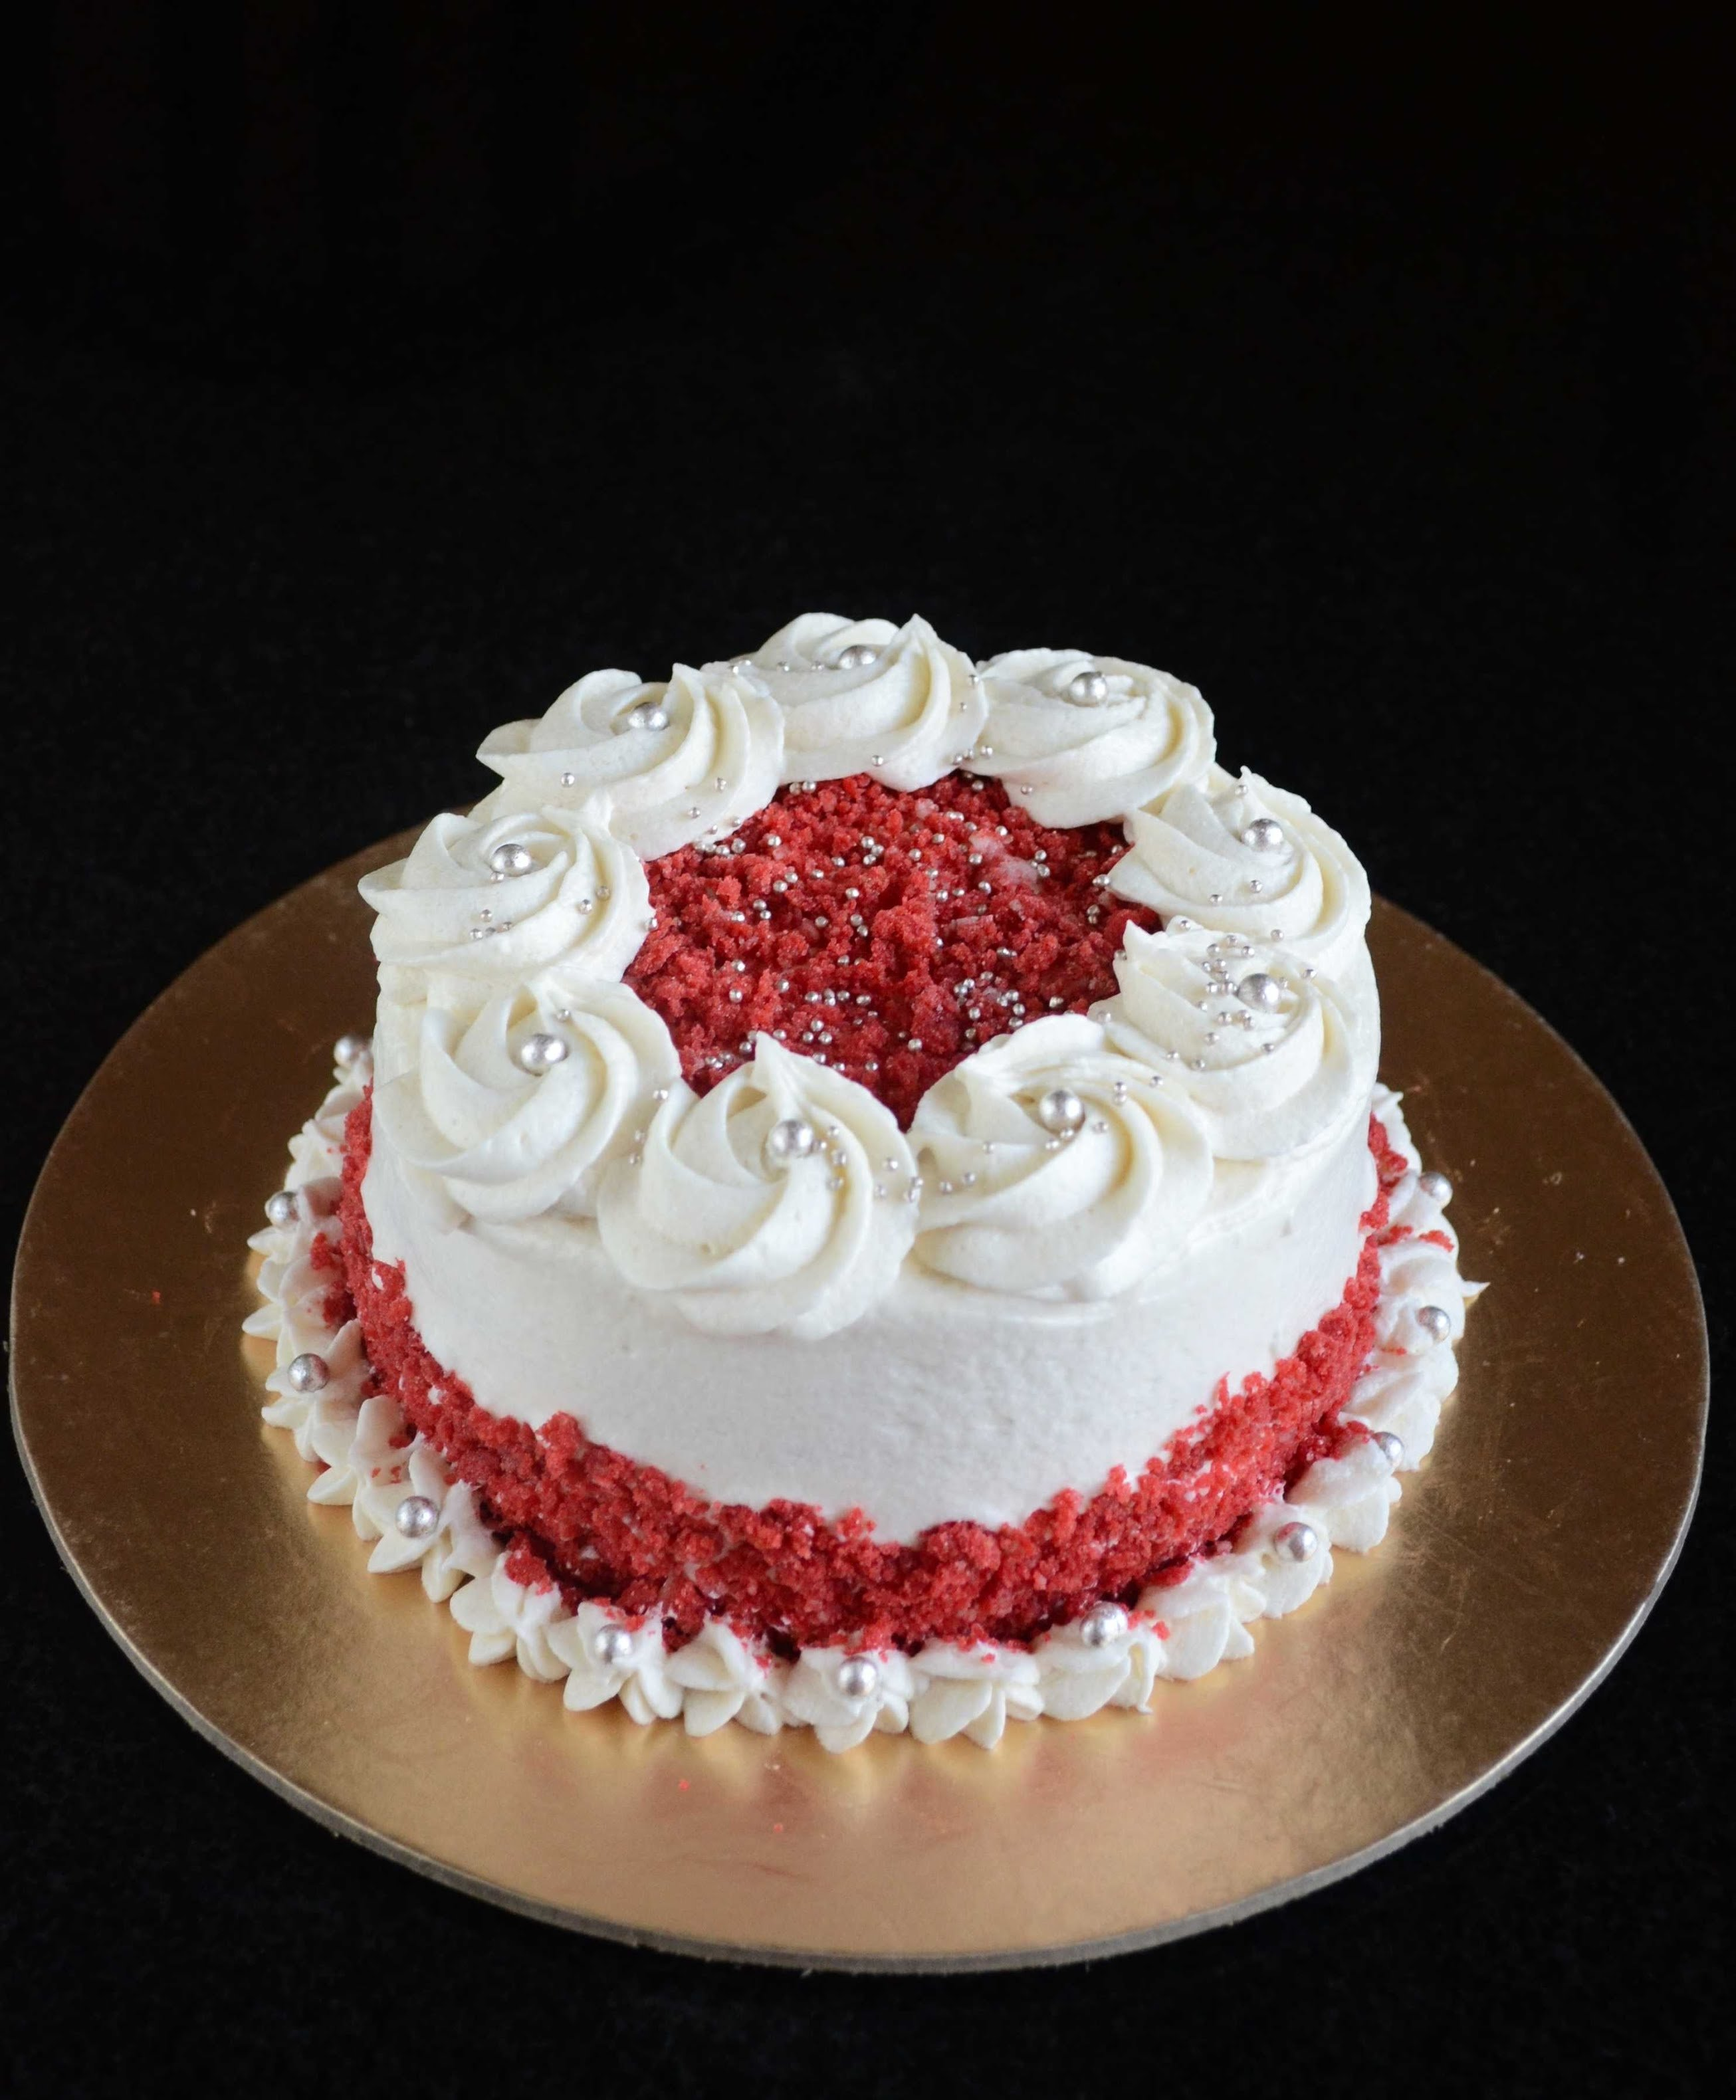 10 Amazing Red Velvet Cake Decorating Ideas how to make eggless red velvet cake with boiled flour buttercream